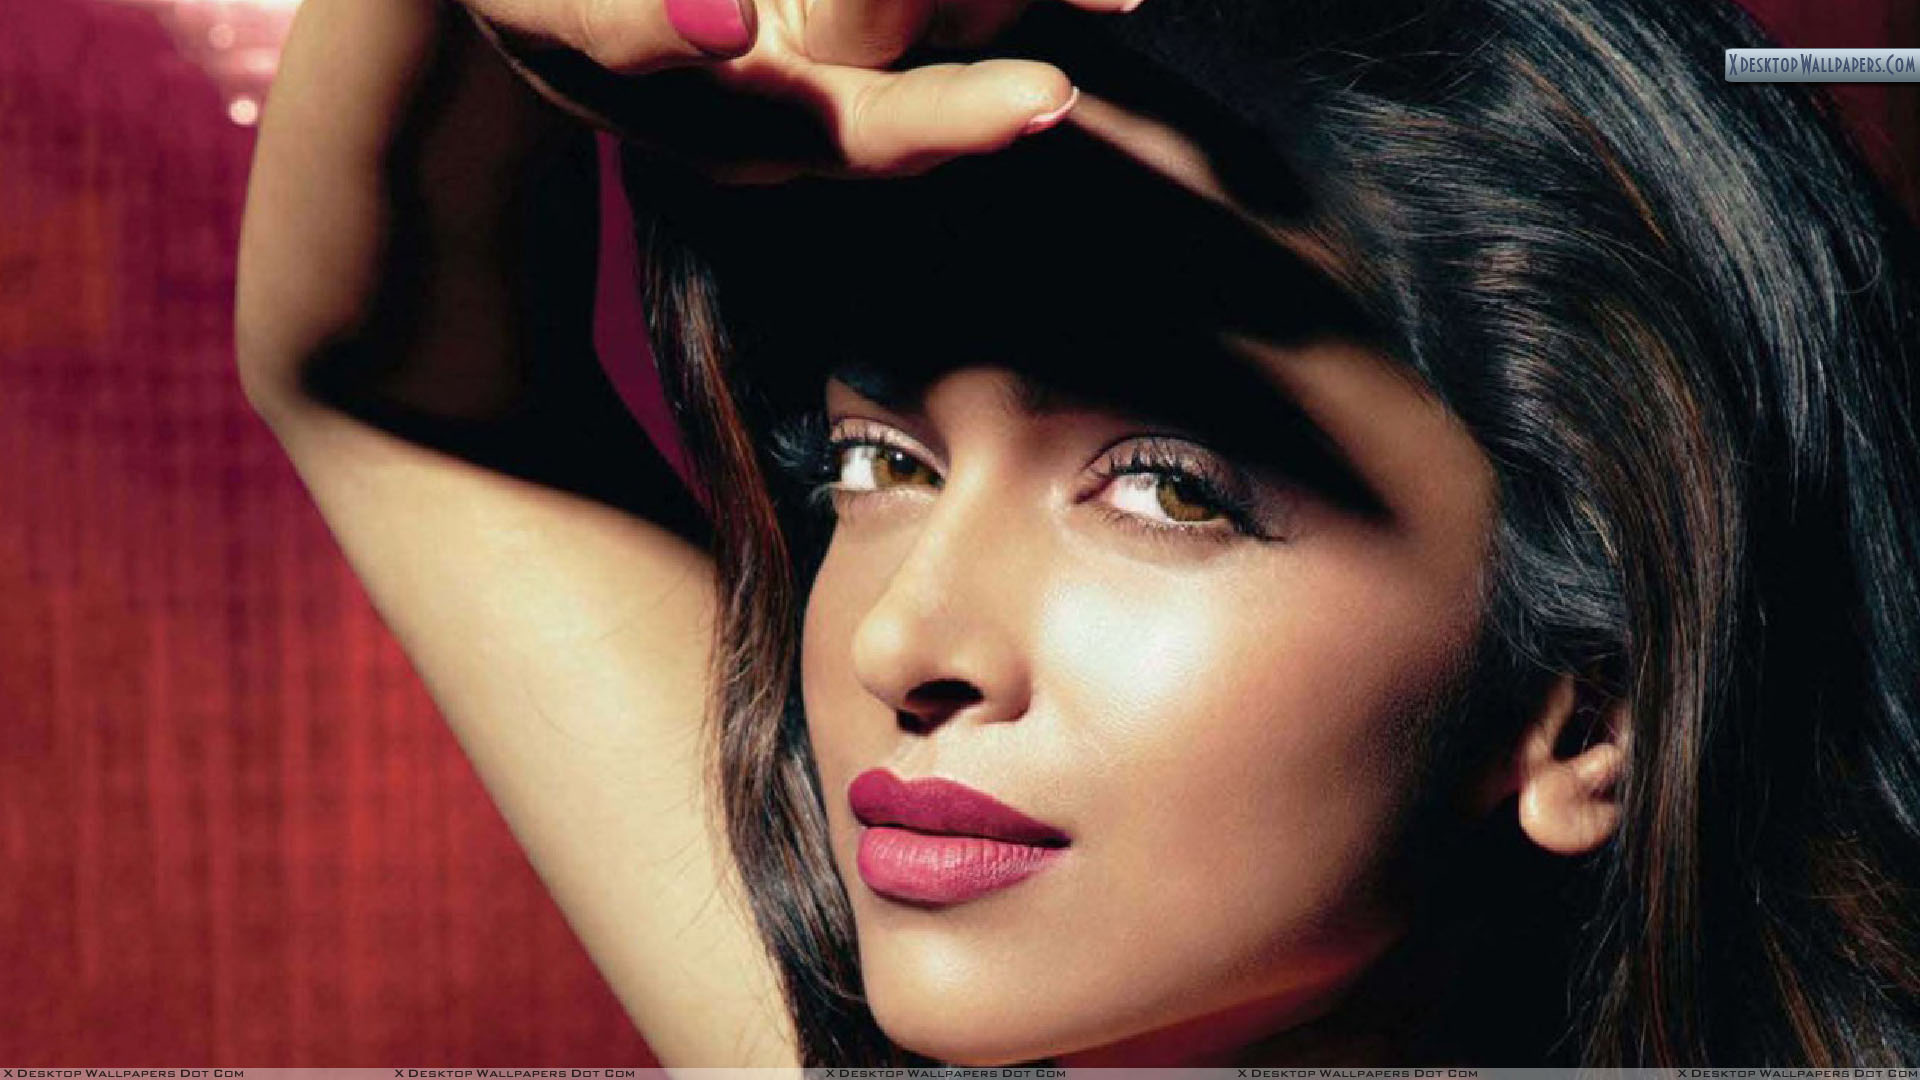 deepika padukone red lips side face closeup wallpaper